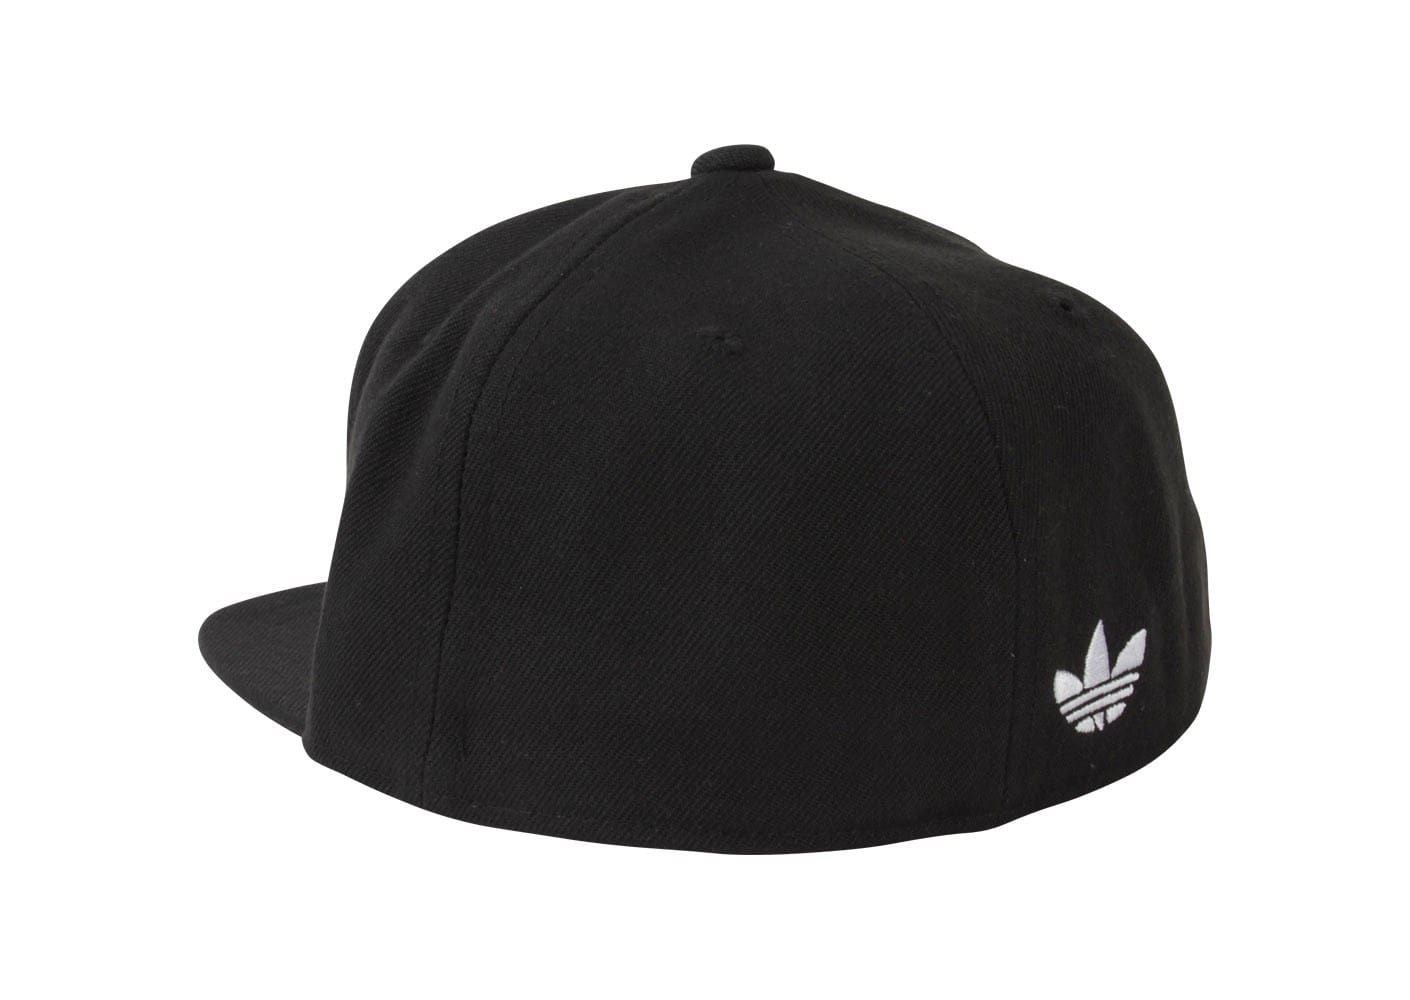 adidas Casquette Trefle Fitted Noire adidas Chausport